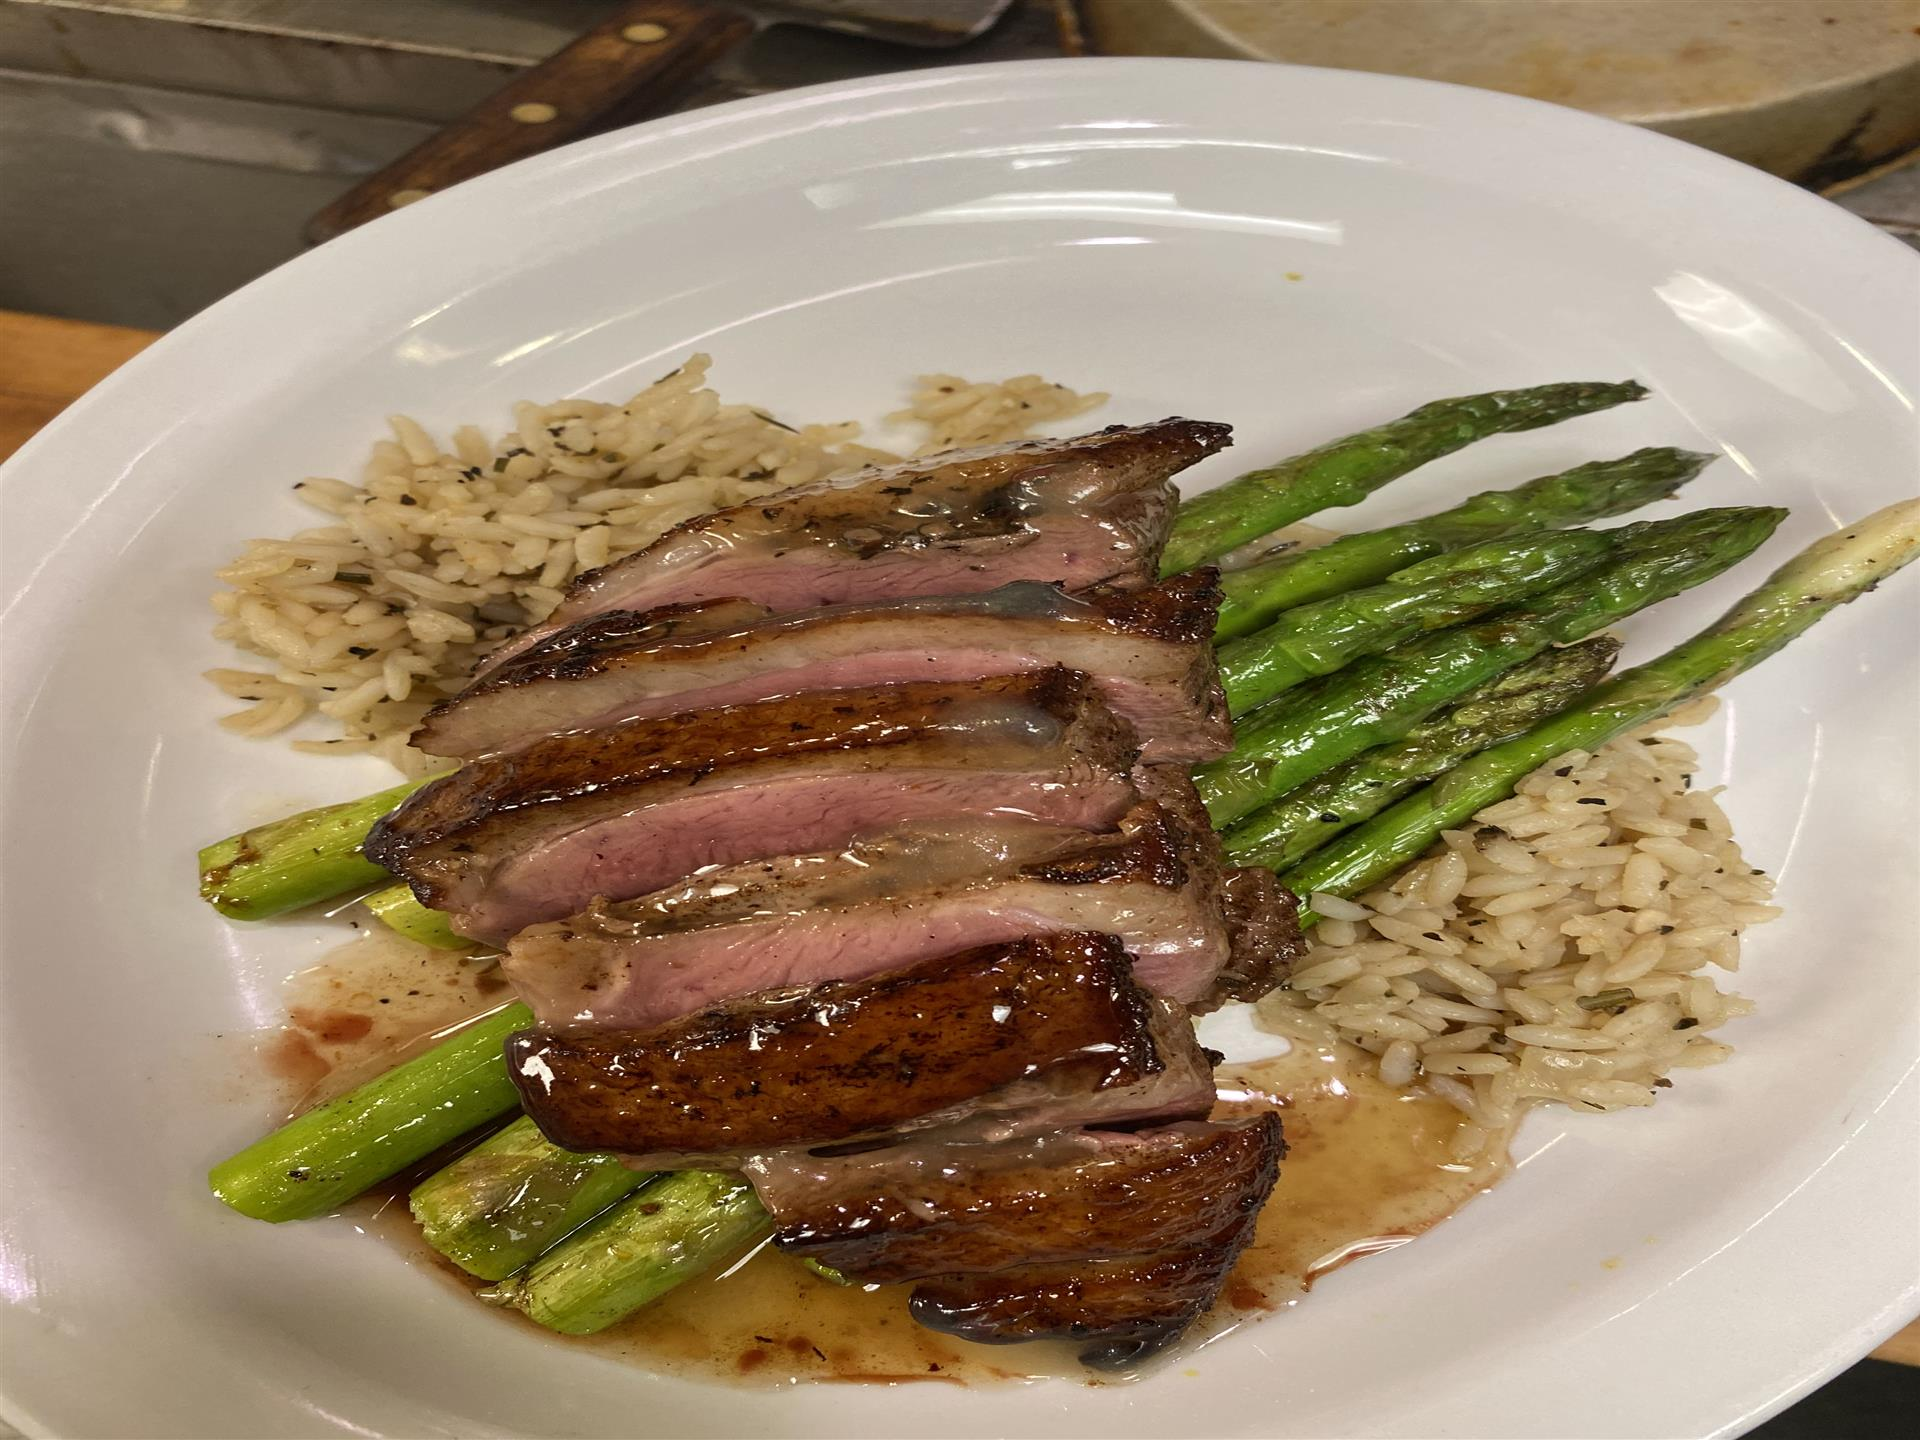 entree with rice and asparagus